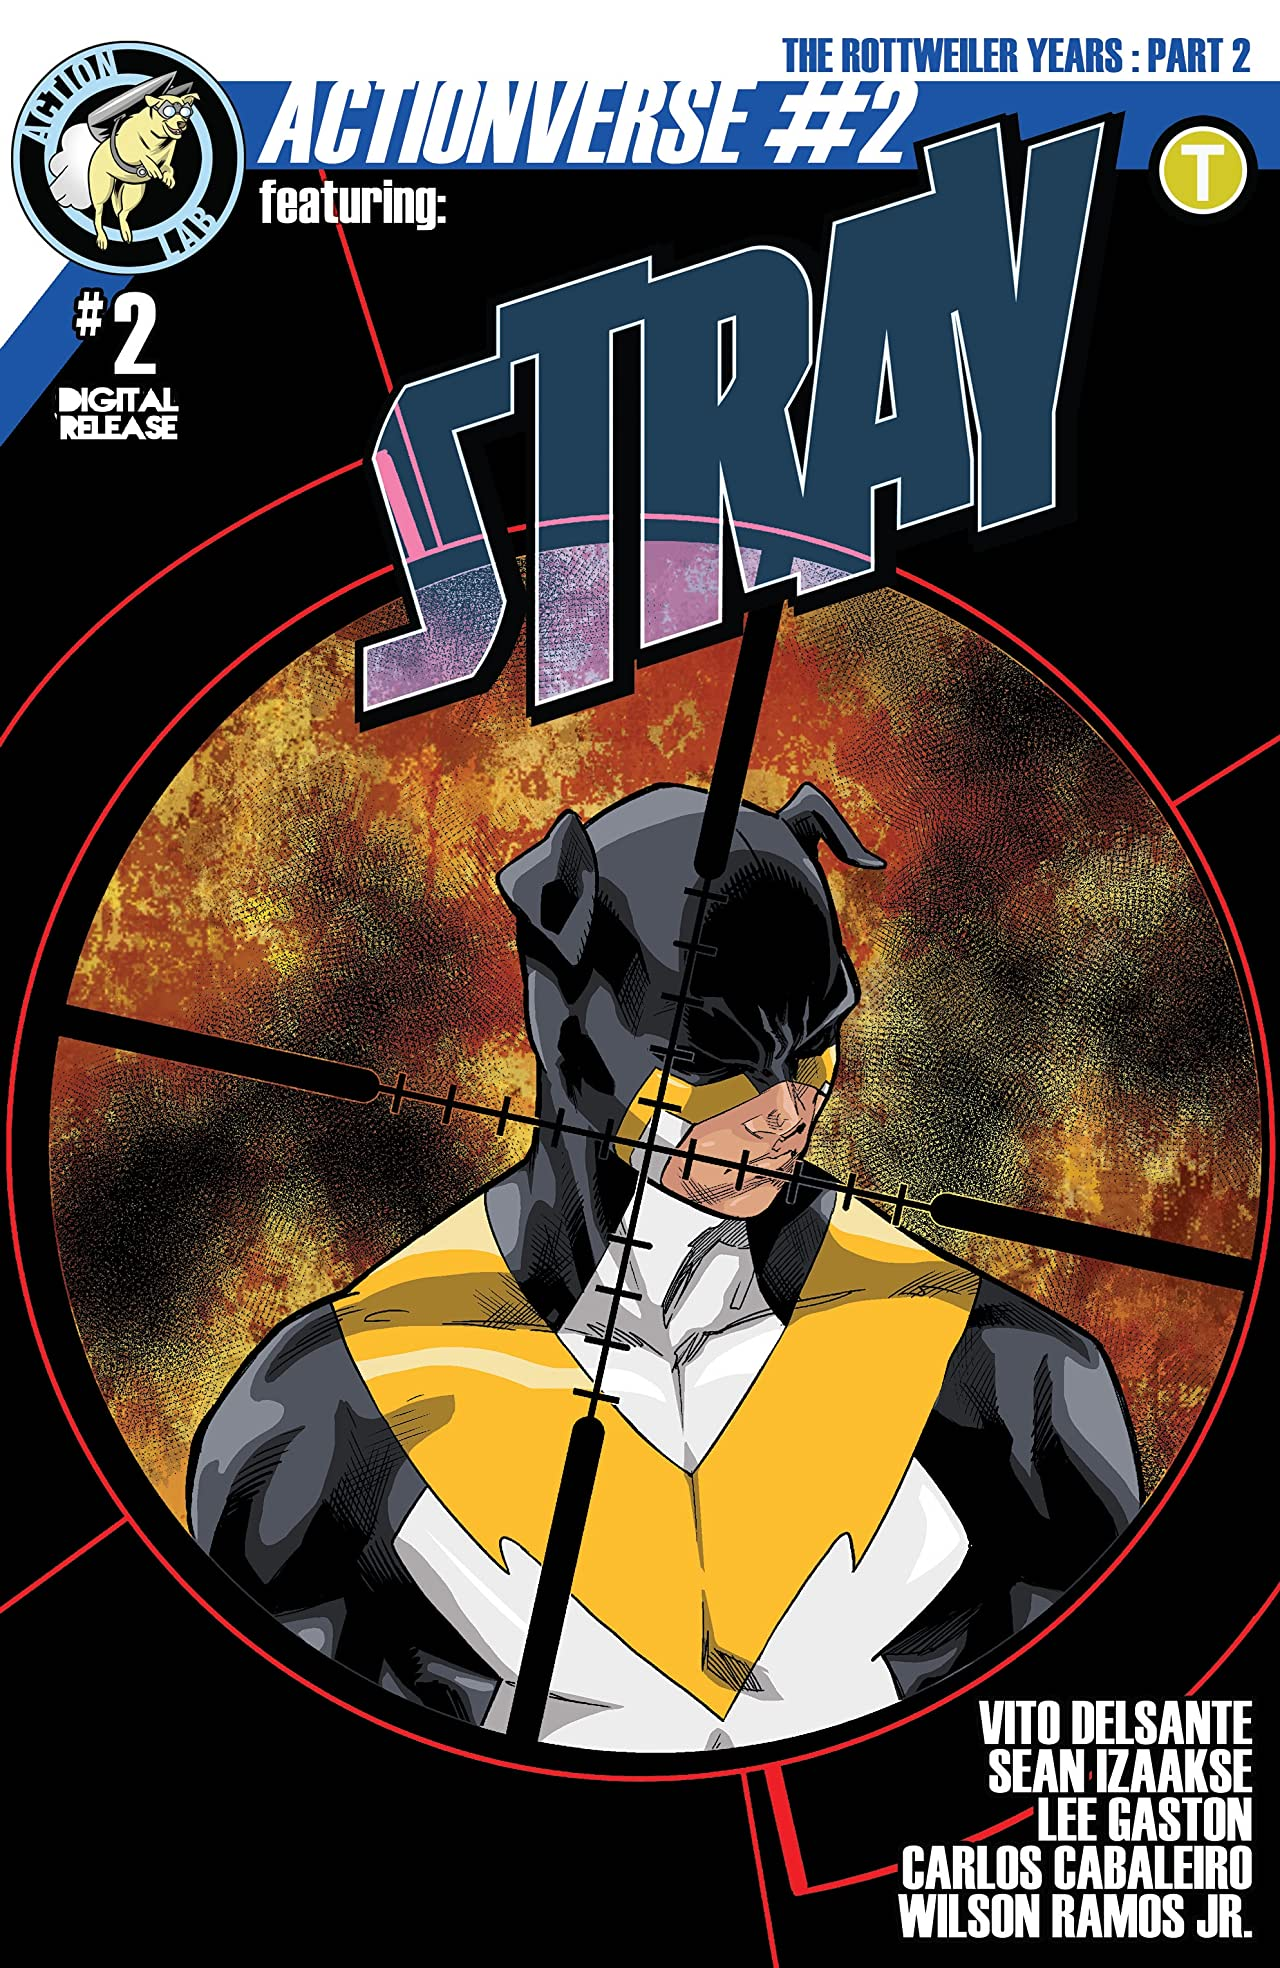 Actionverse Ongoing Stray #2